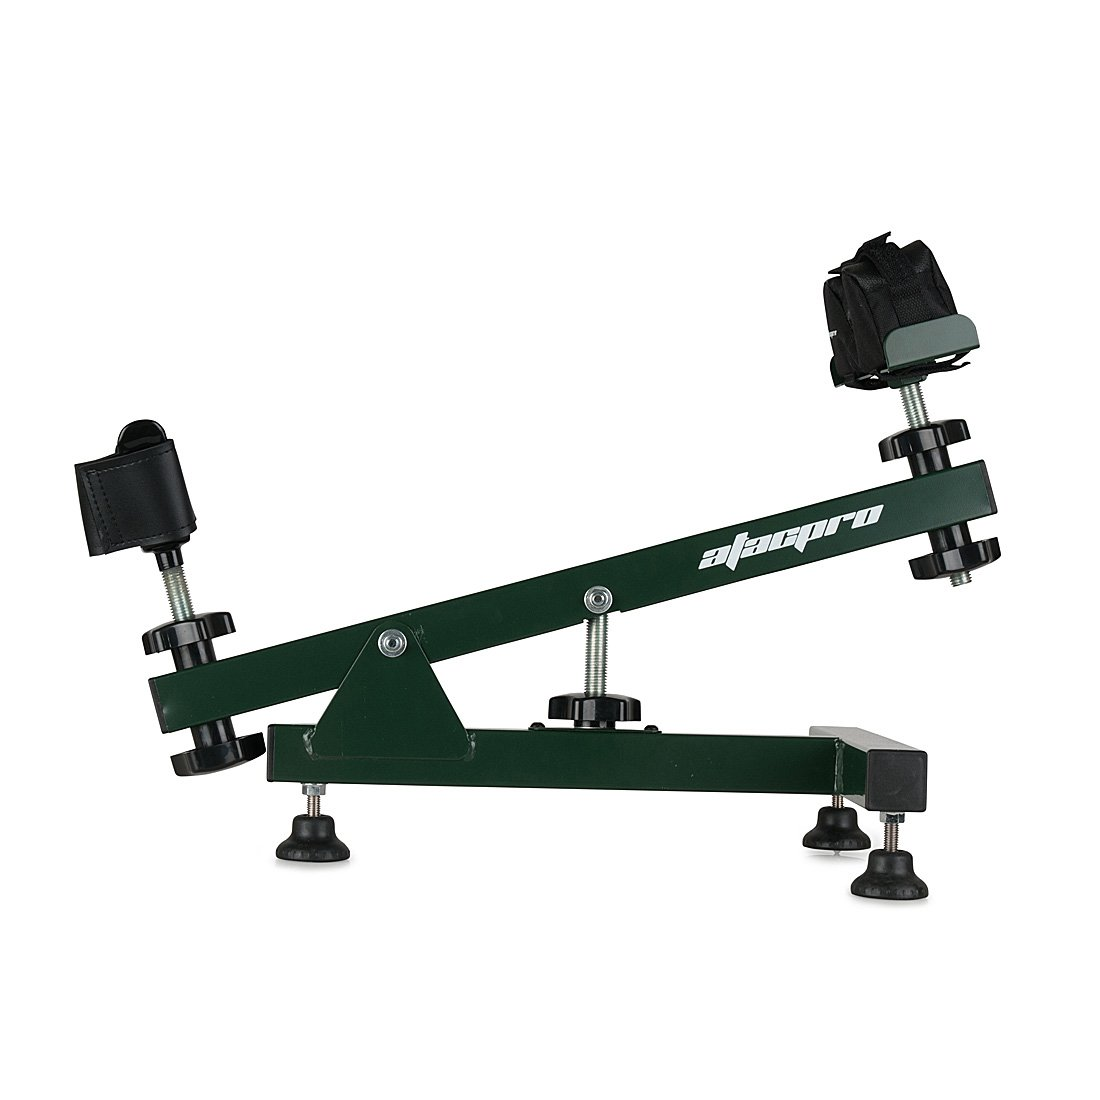 AtacPro Adjustable Rifle Shooting Steay Aim Rest for Outdoor Range Bench, Metal, Recoil Reducing